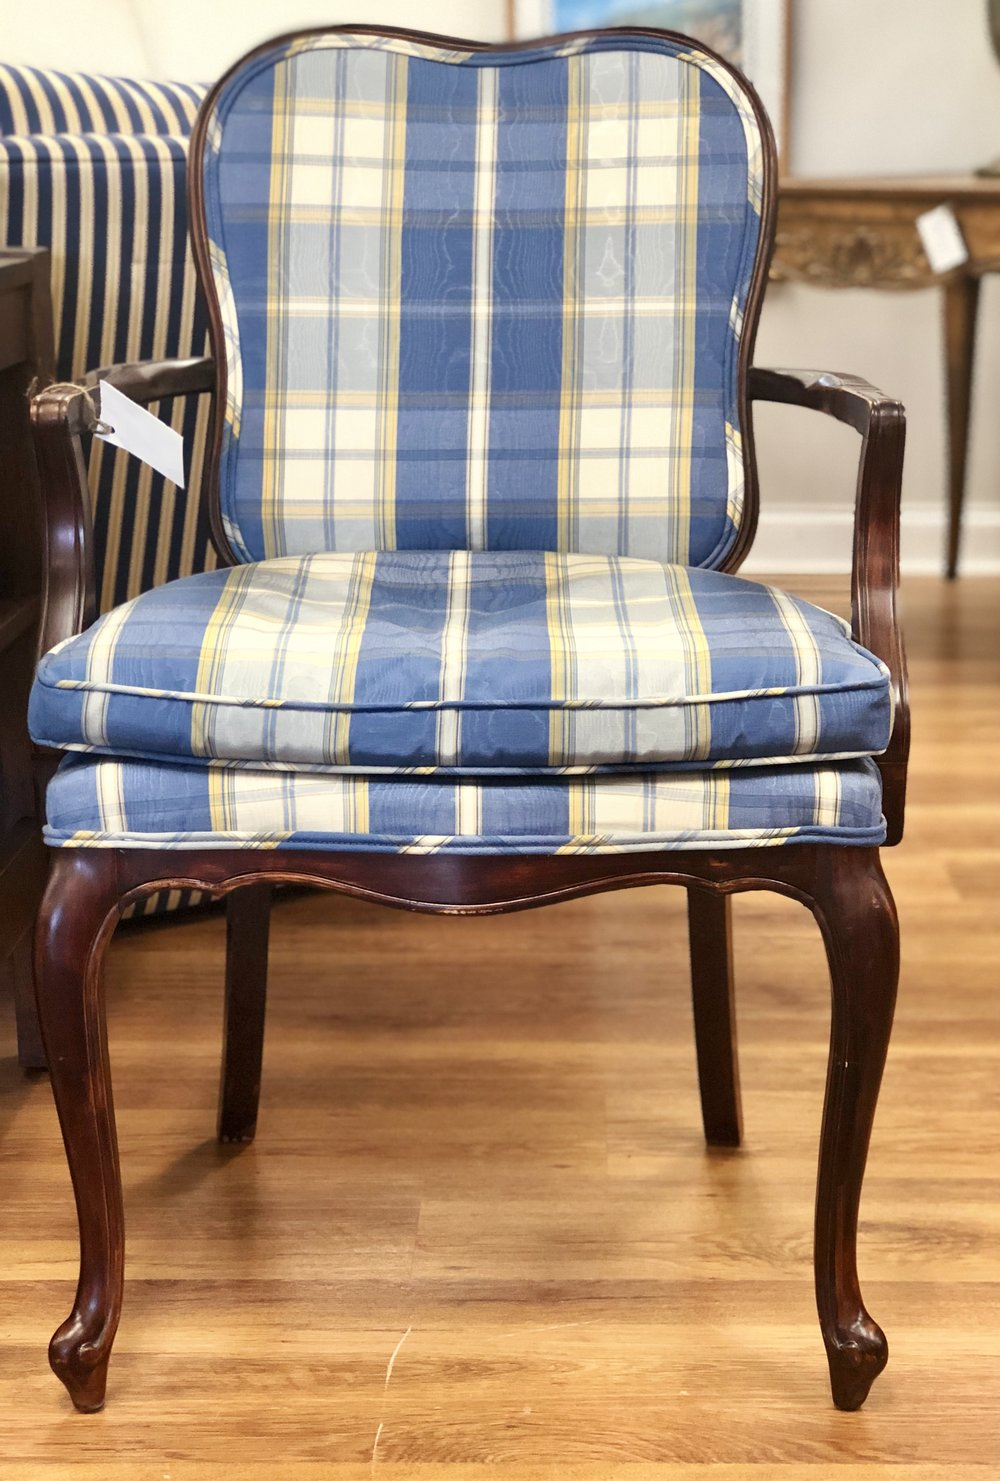 The juxtaposition of the feminine curve on the back of this chair with the masculinity of the plaid fabric bring an overall balance to this classic piece.